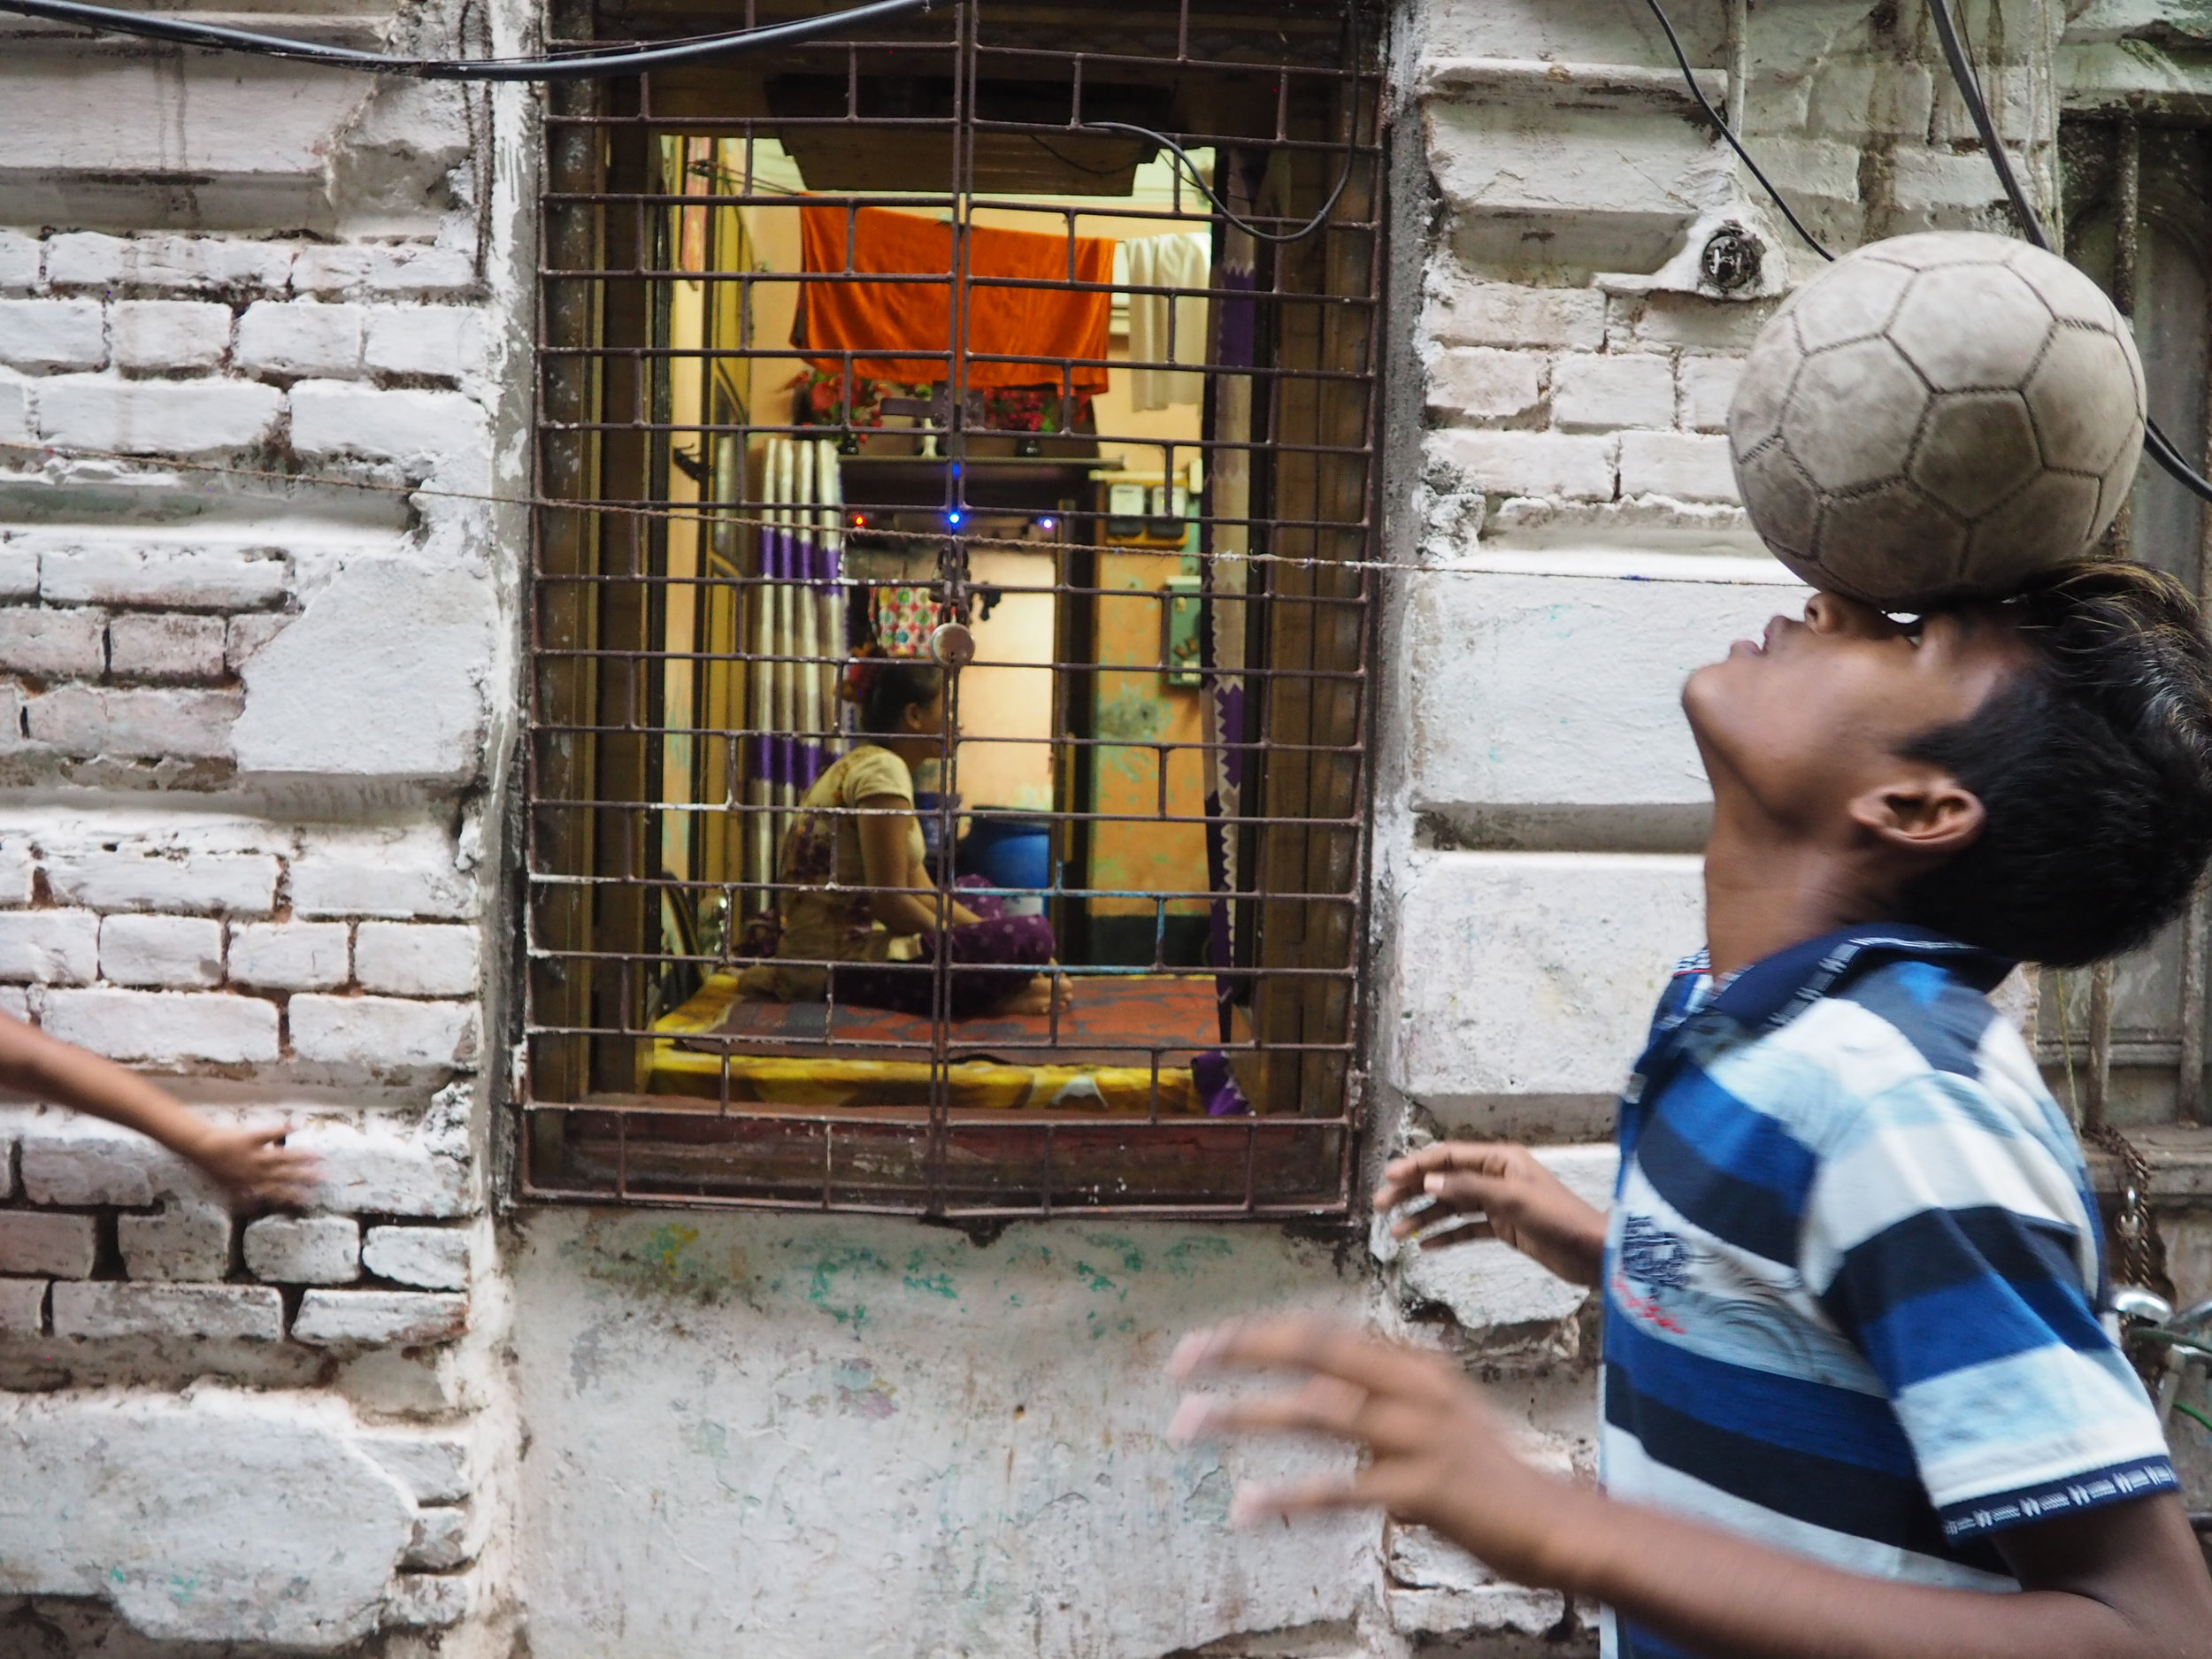 A Durbar footballer practices in an alleyway of Sonagachi while a sex worker looks on.